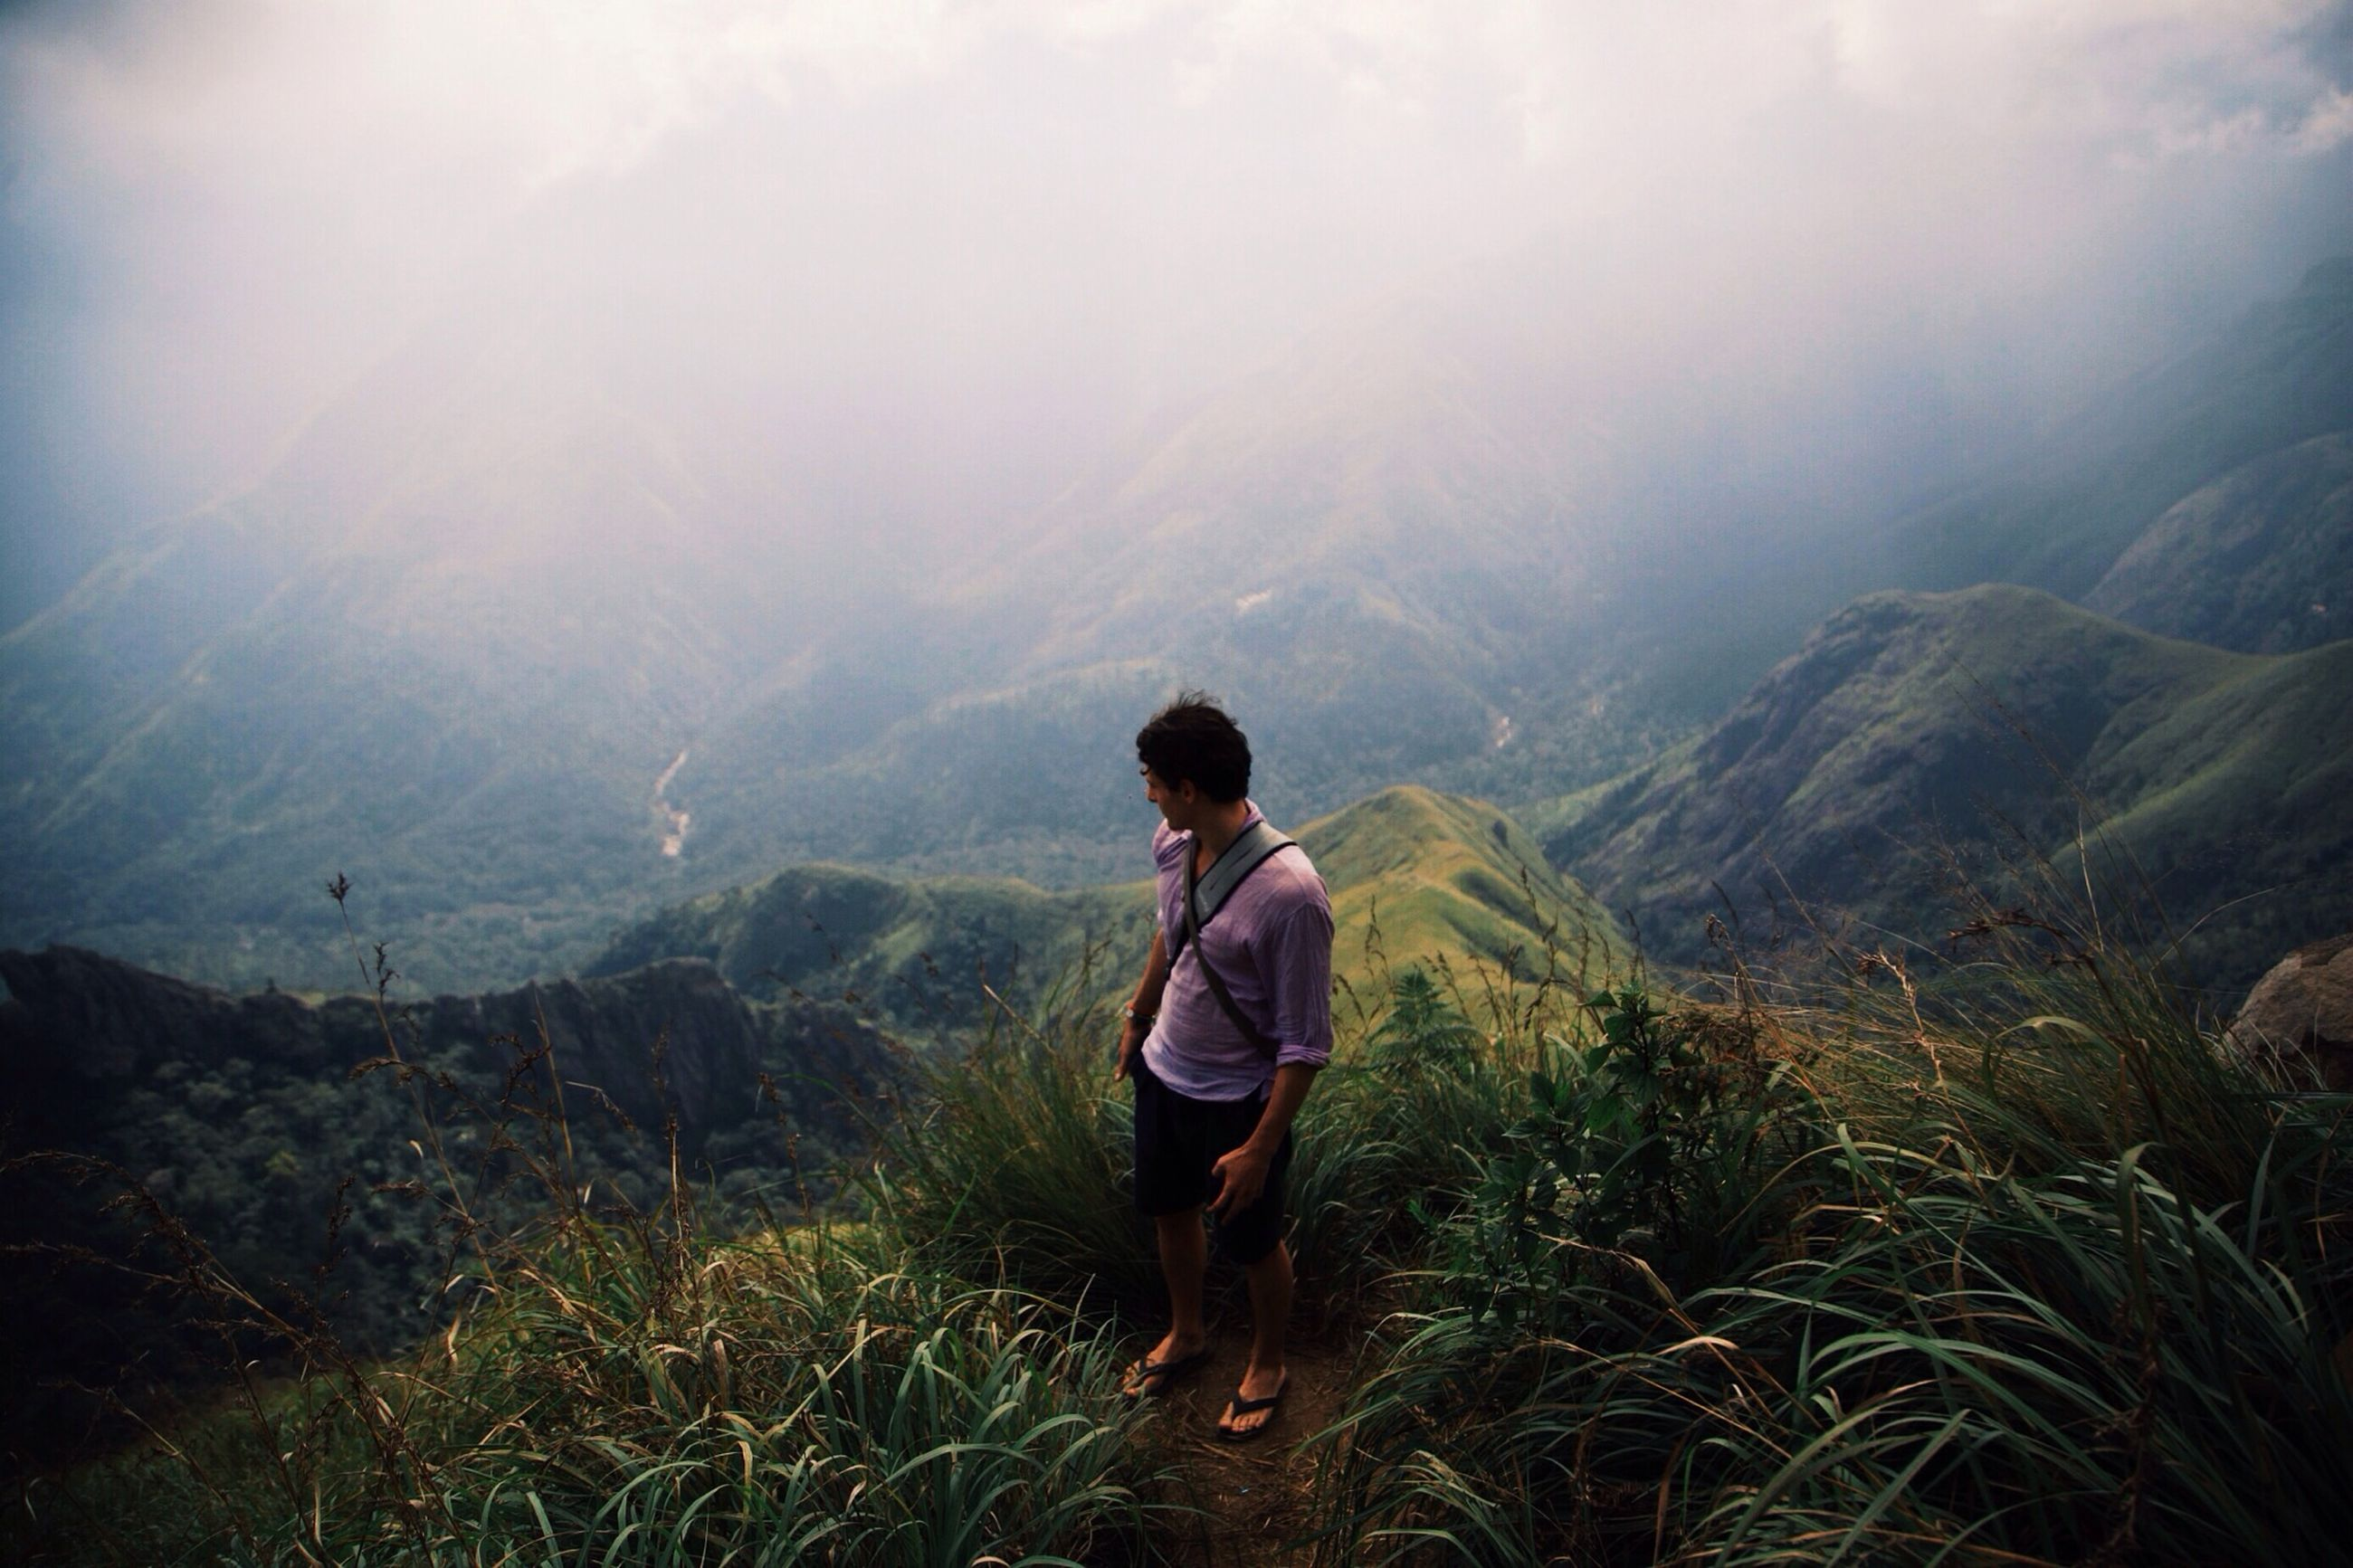 mountain, tranquil scene, tranquility, scenics, rear view, beauty in nature, mountain range, landscape, lifestyles, leisure activity, nature, sky, full length, standing, non-urban scene, casual clothing, getting away from it all, remote